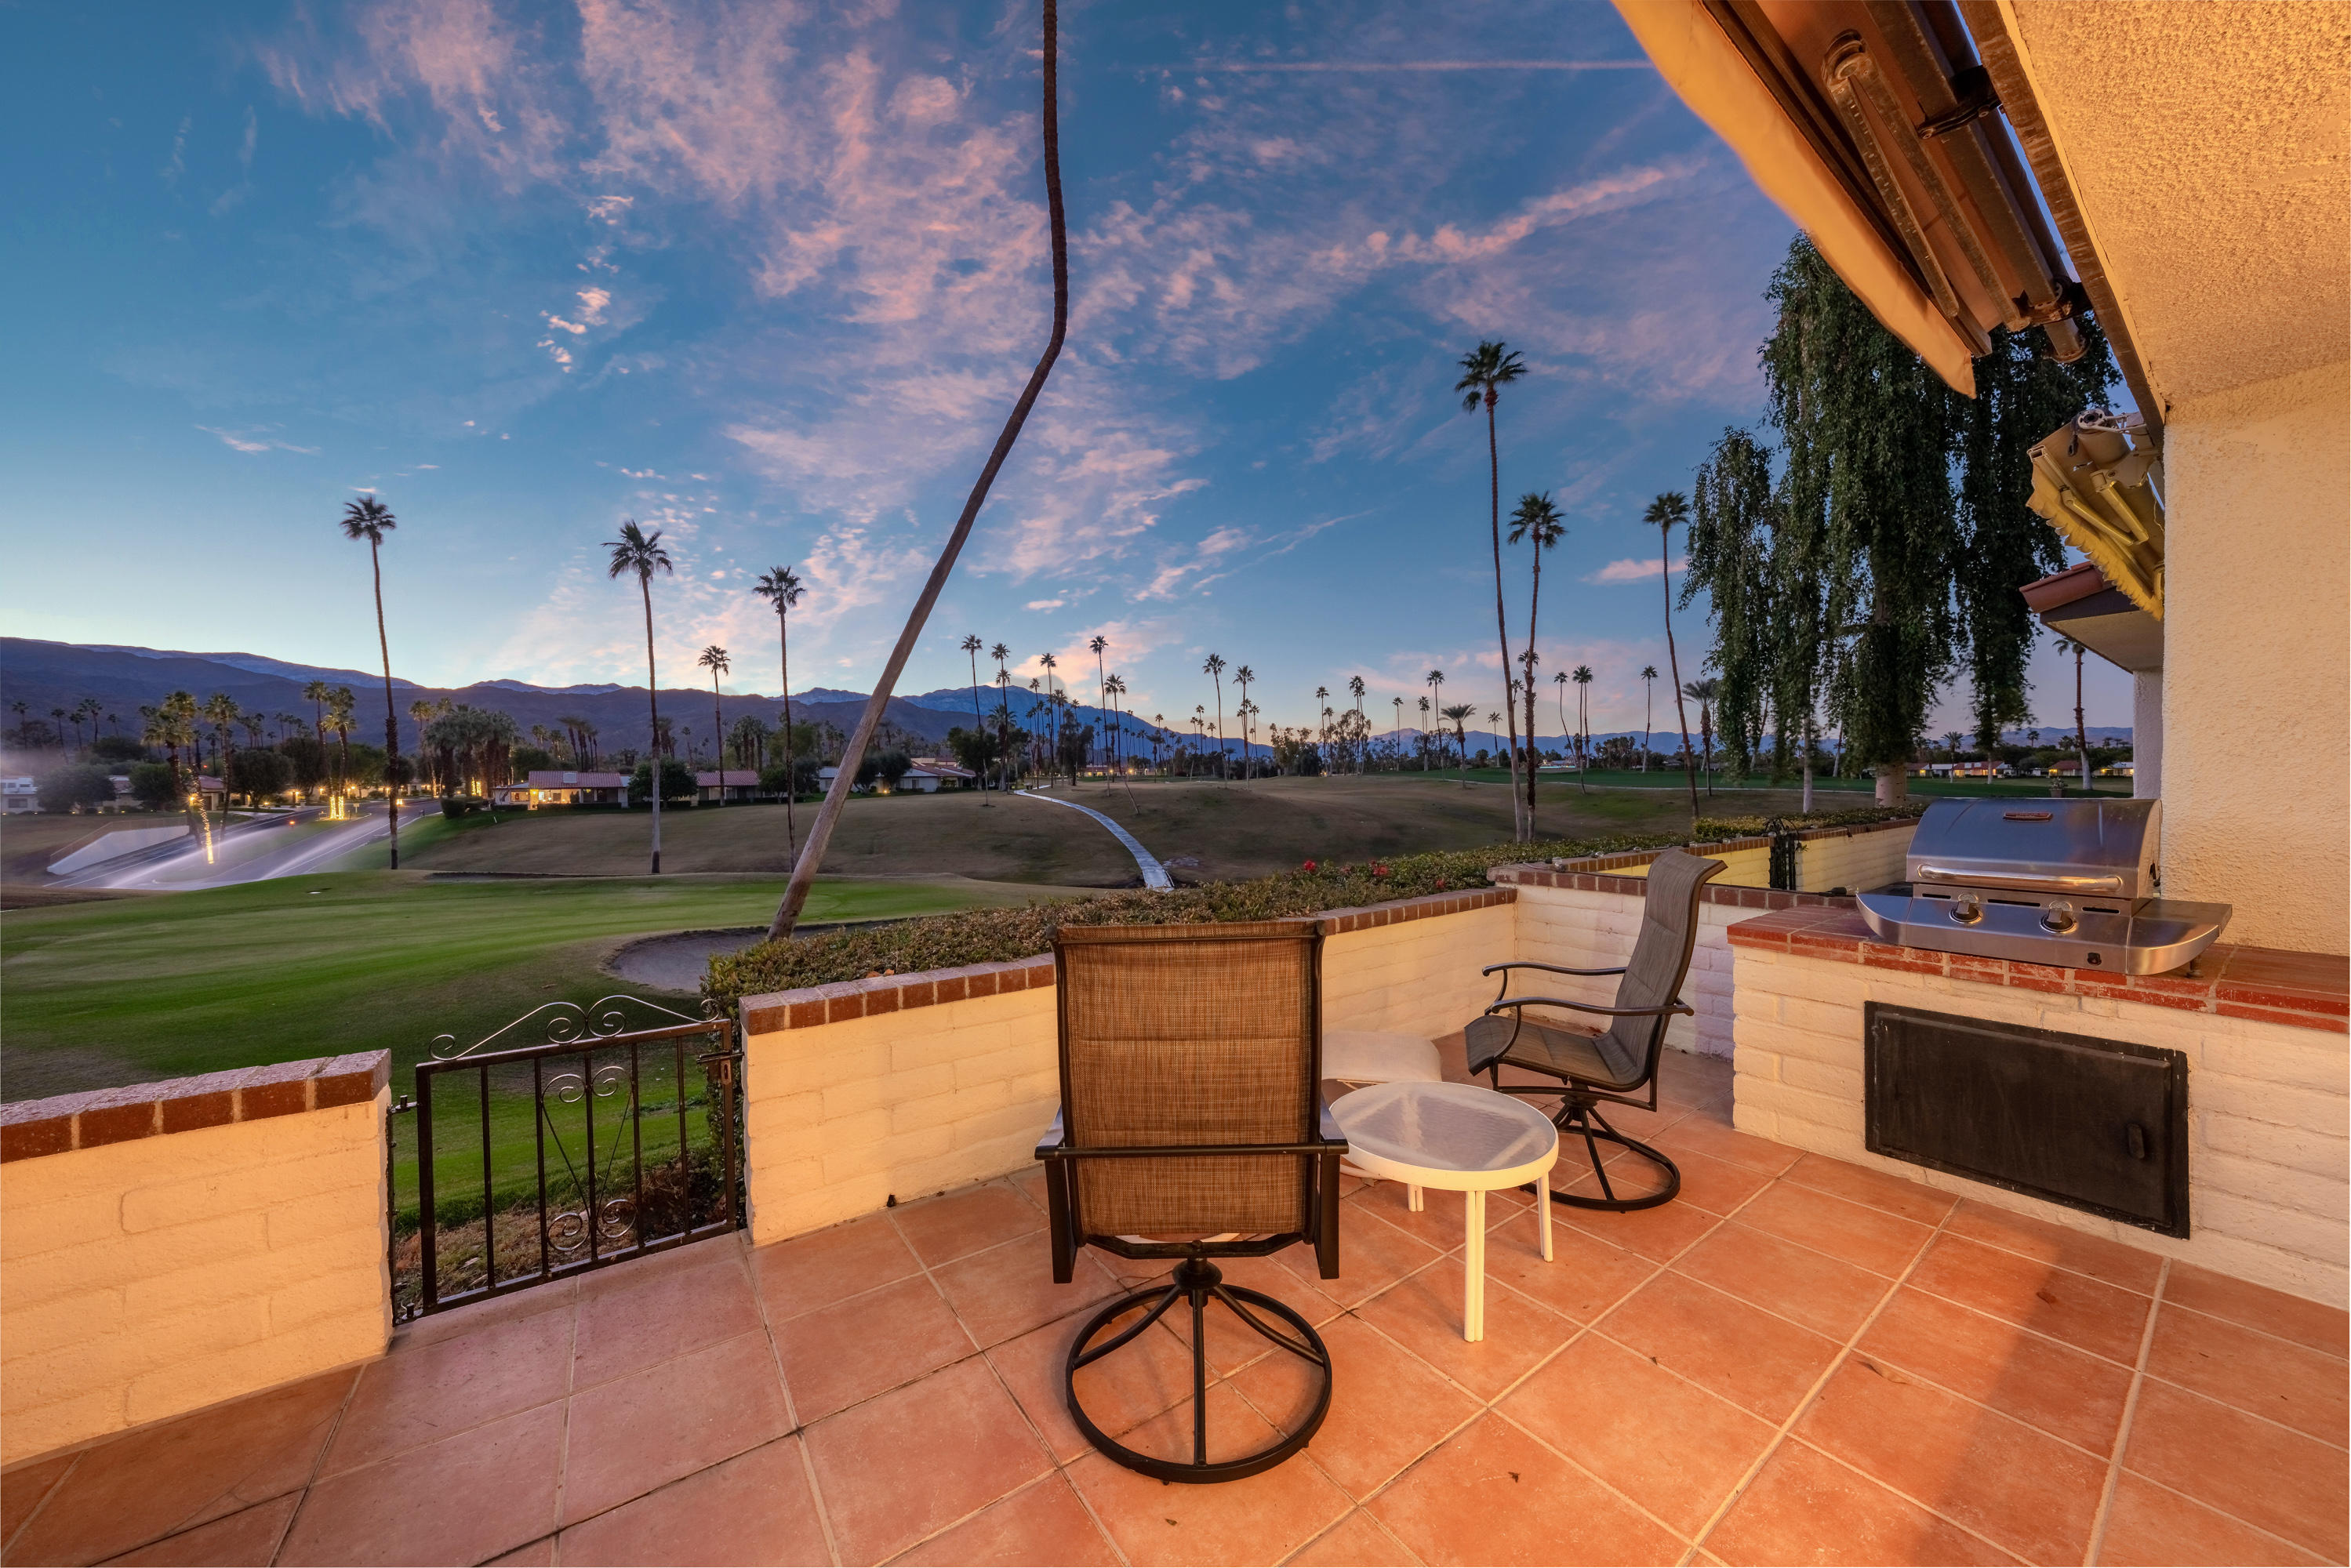 Breathtaking Mountain and Golf Course Views are enjoyed from this spacious condo in Rancho Las Palmas Country Club. There's plenty of room to relax and enjoy in this expanded 300 plan with 3 bedrooms, 2 bathrooms and 1800 square feet. A private gated entry courtyard leads to the front door on a tiled walkway while enjoying lush landscaping. Upon entering the home the Large sliding glass doors immediately let you enjoy the spectacular panoramic mountain views creating a picturesque scene. The home features an open great room with voluminous ceilings, a wet bar and tile flooring throughout provides easy living. The atrium has been converted to create a large, expanded kitchen and a spacious secondary bedroom. This home has been well maintained and includes dual zone heating & air plus a brand new epoxy on the 2-car garage floor. The rear patio will provide endless relaxation and enjoyment with motorized retractable awnings and a you can BBQ and dine while taking in the most ideal view. Rancho Las Palmas is located in Rancho Mirage with a convenient location near shops, restaurants and all the other desert amenities.